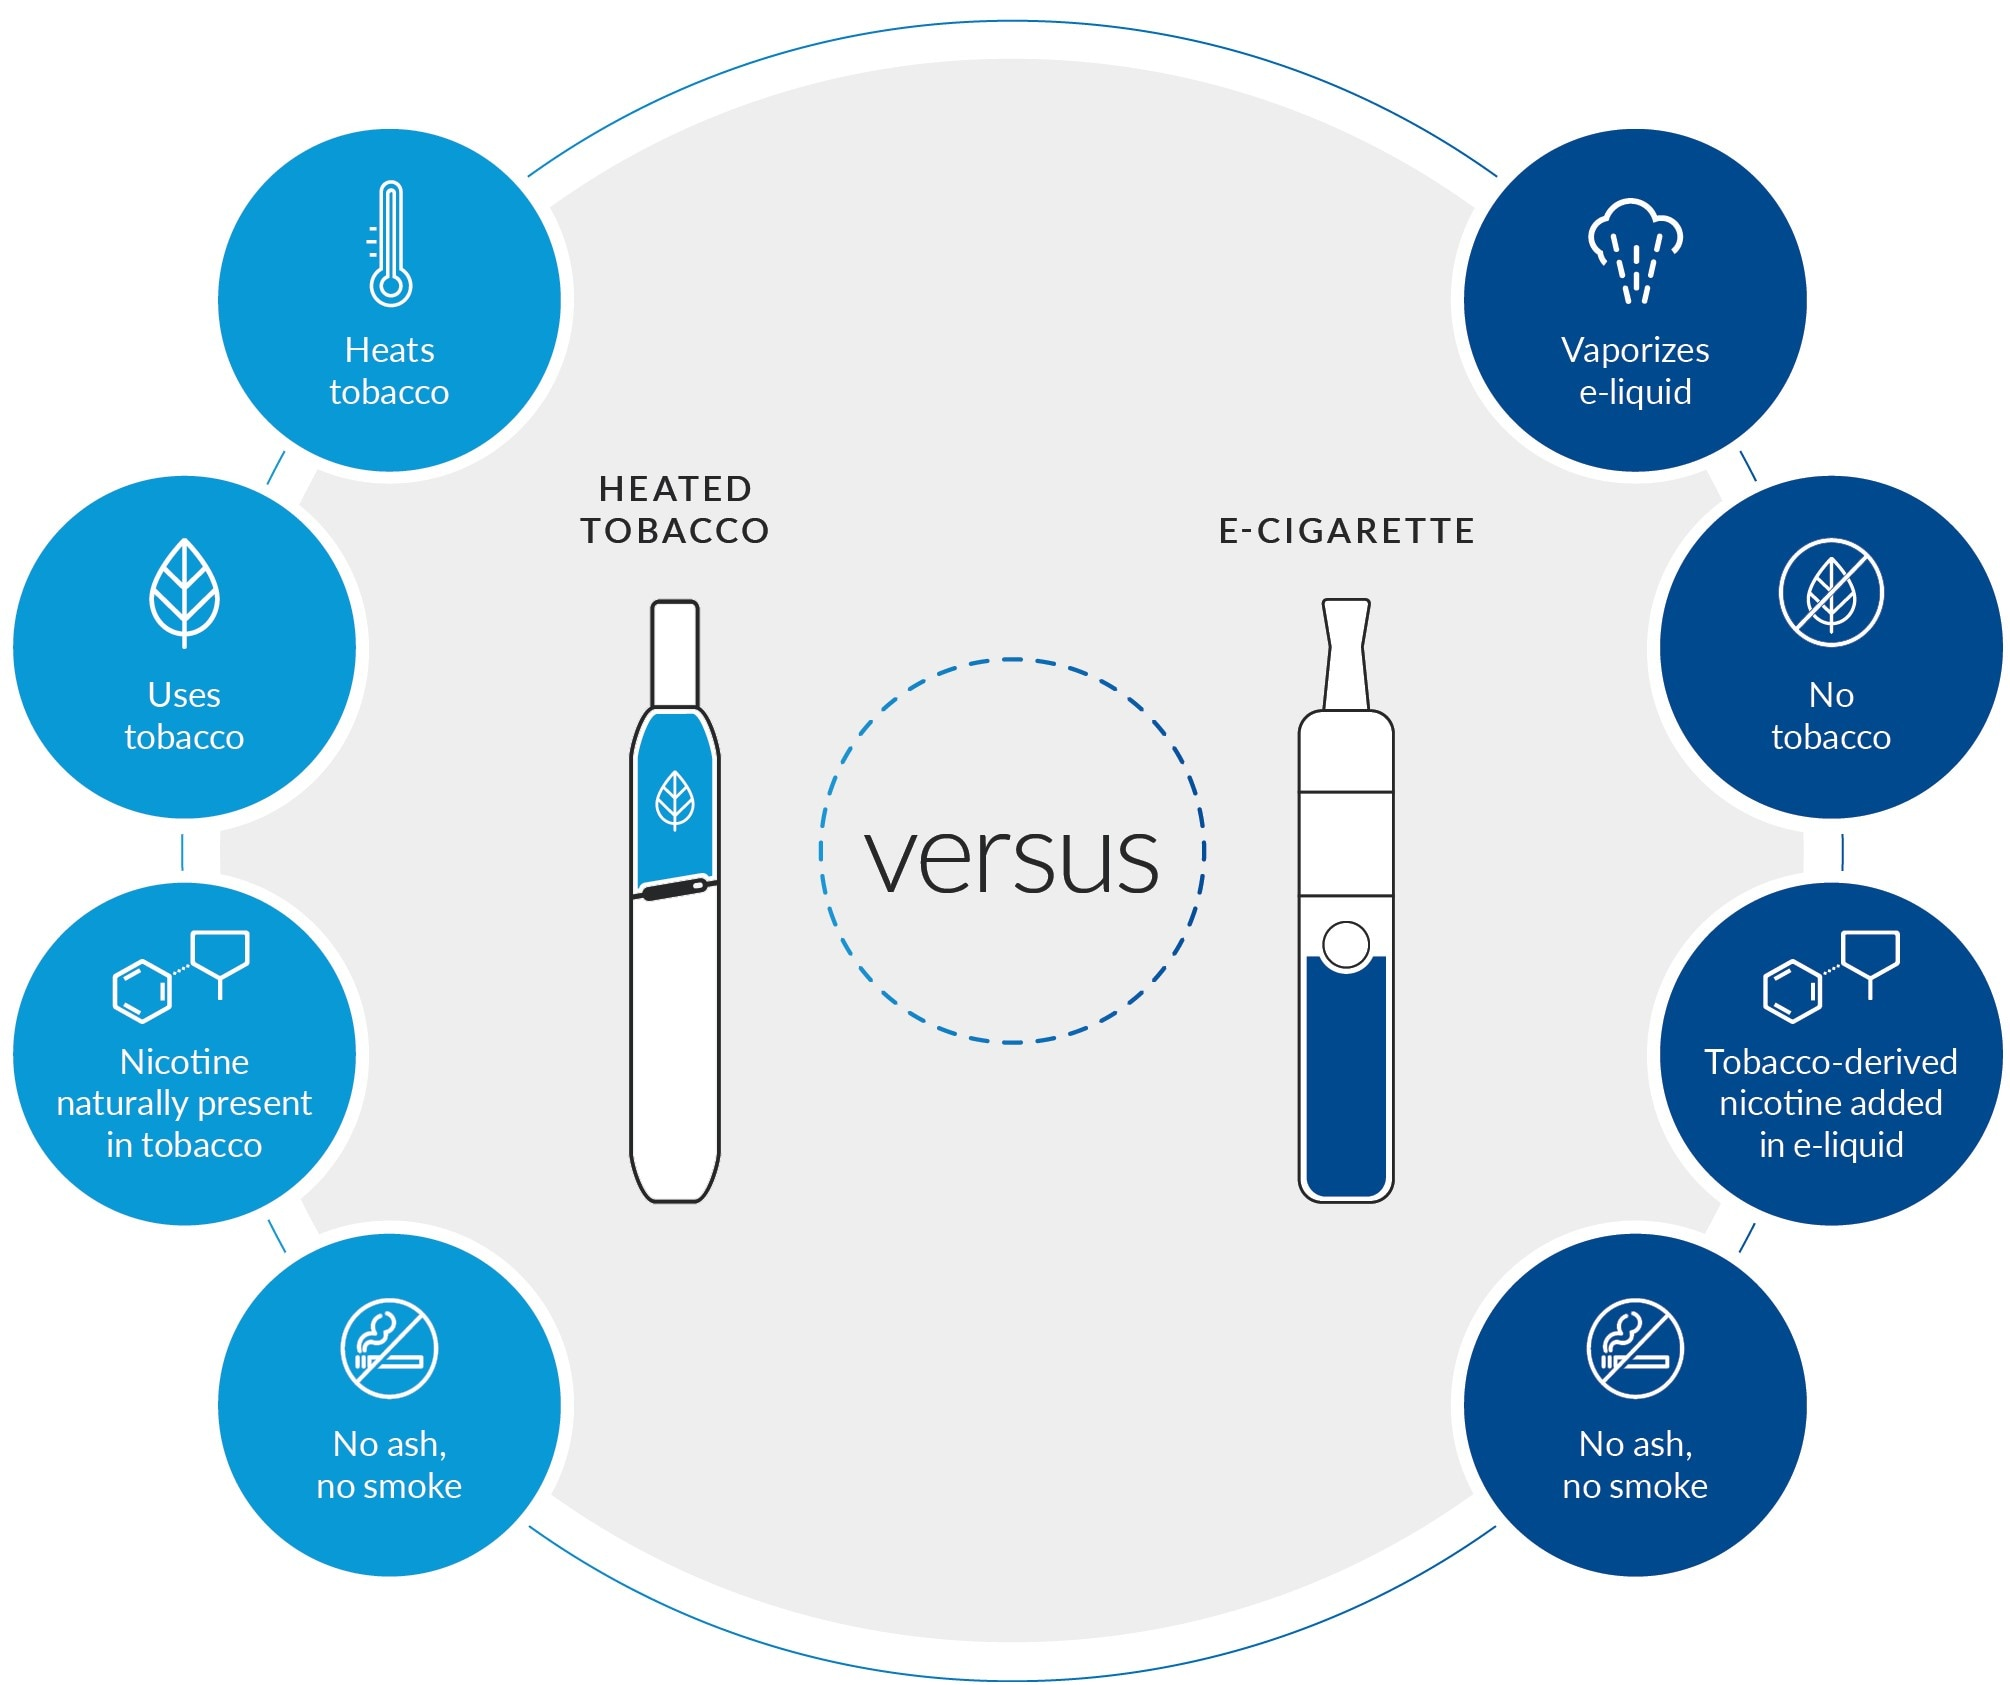 difference heated tobacco and e-cigarettes inforgraphic product health impacts